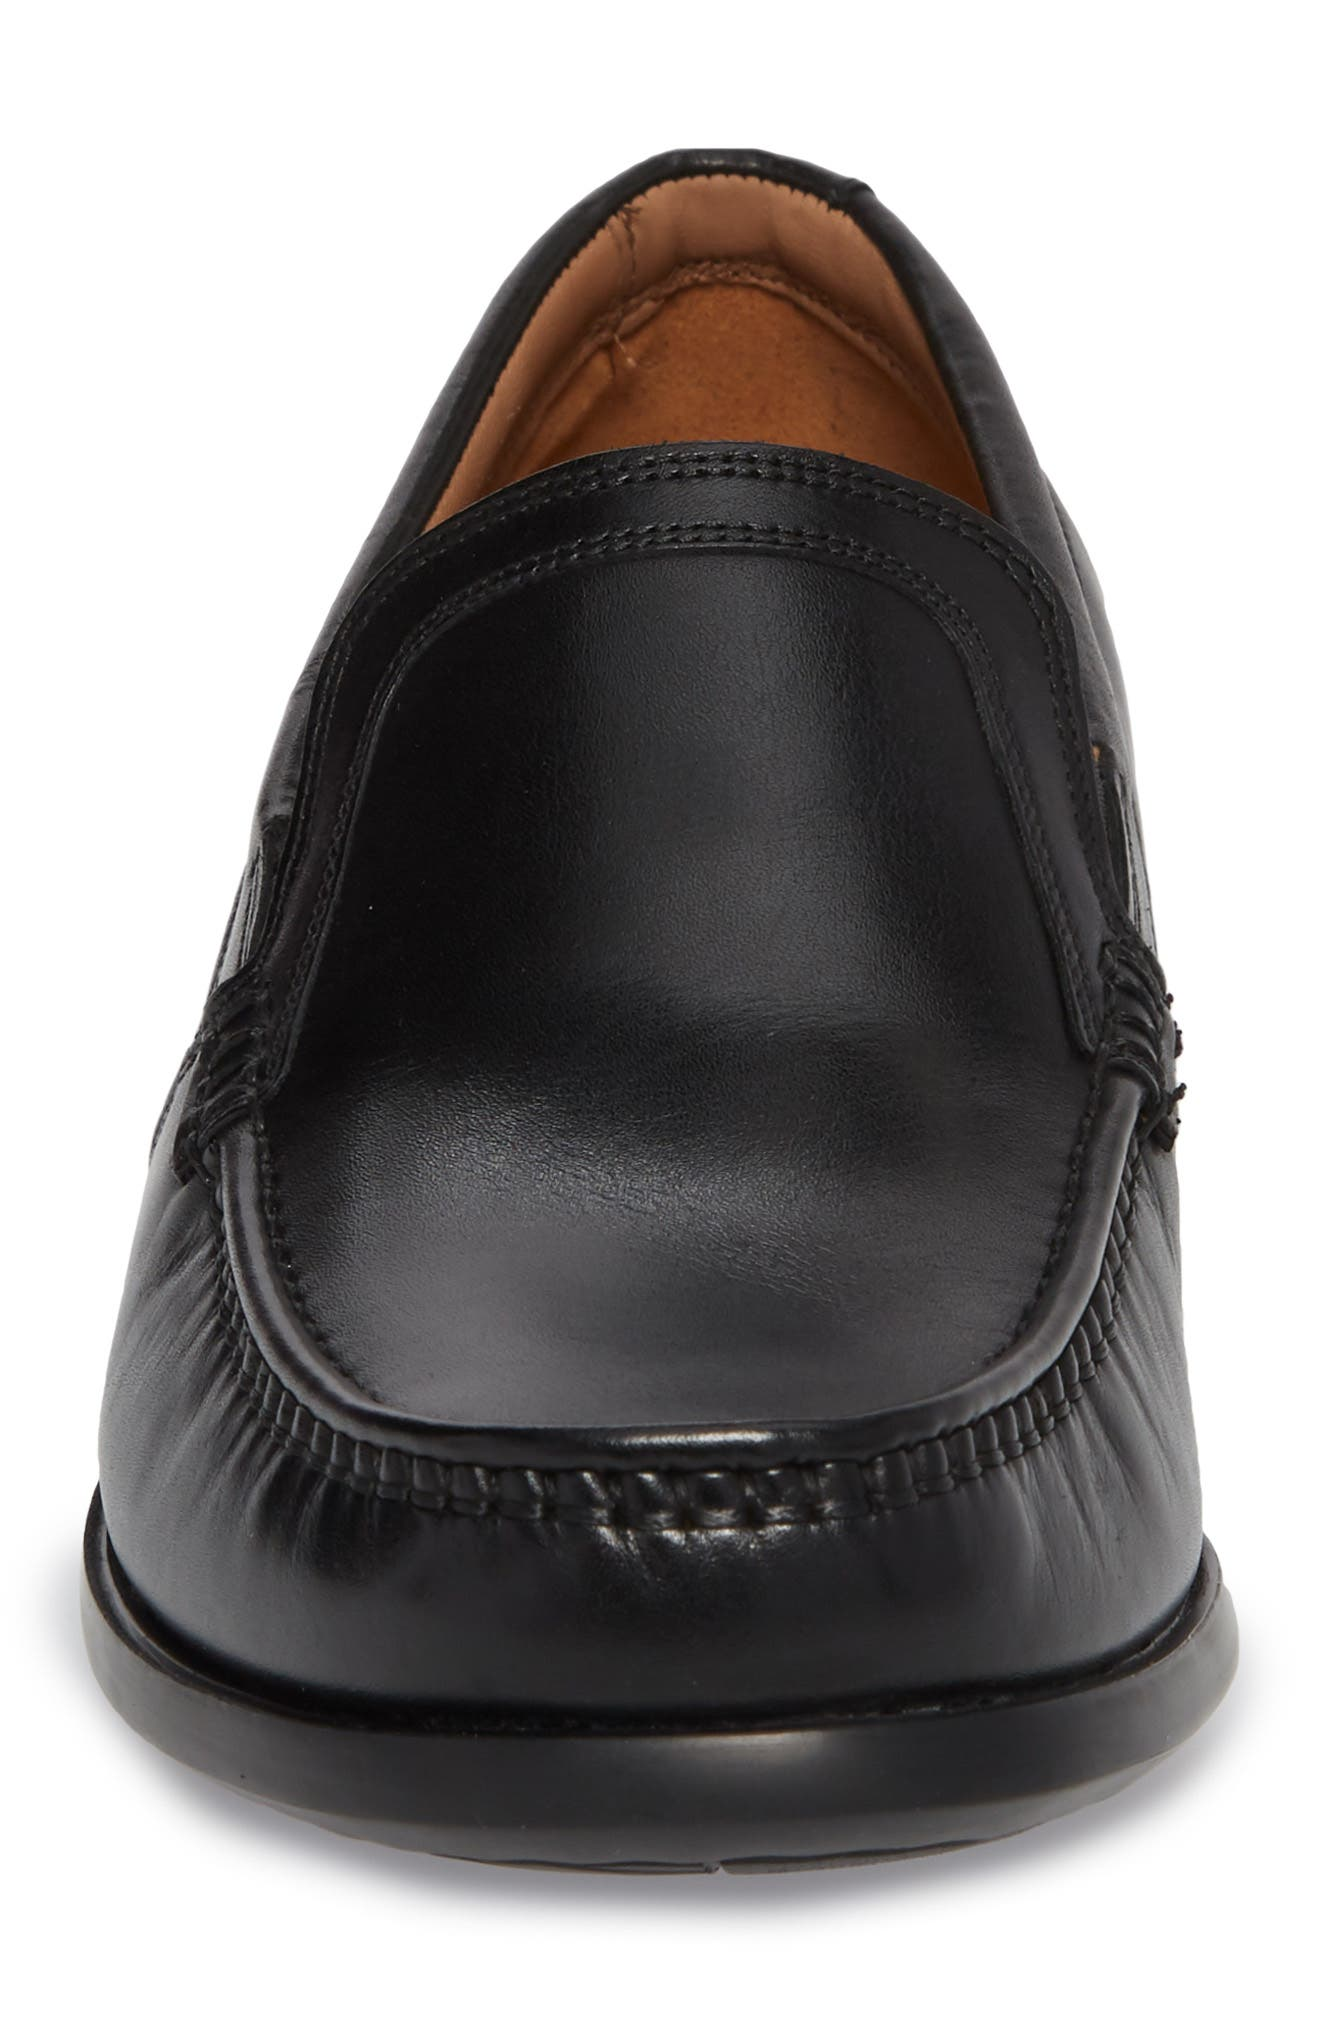 Clarks<sup>®</sup> Ungala Free Venetian Loafer,                             Alternate thumbnail 4, color,                             Black Leather